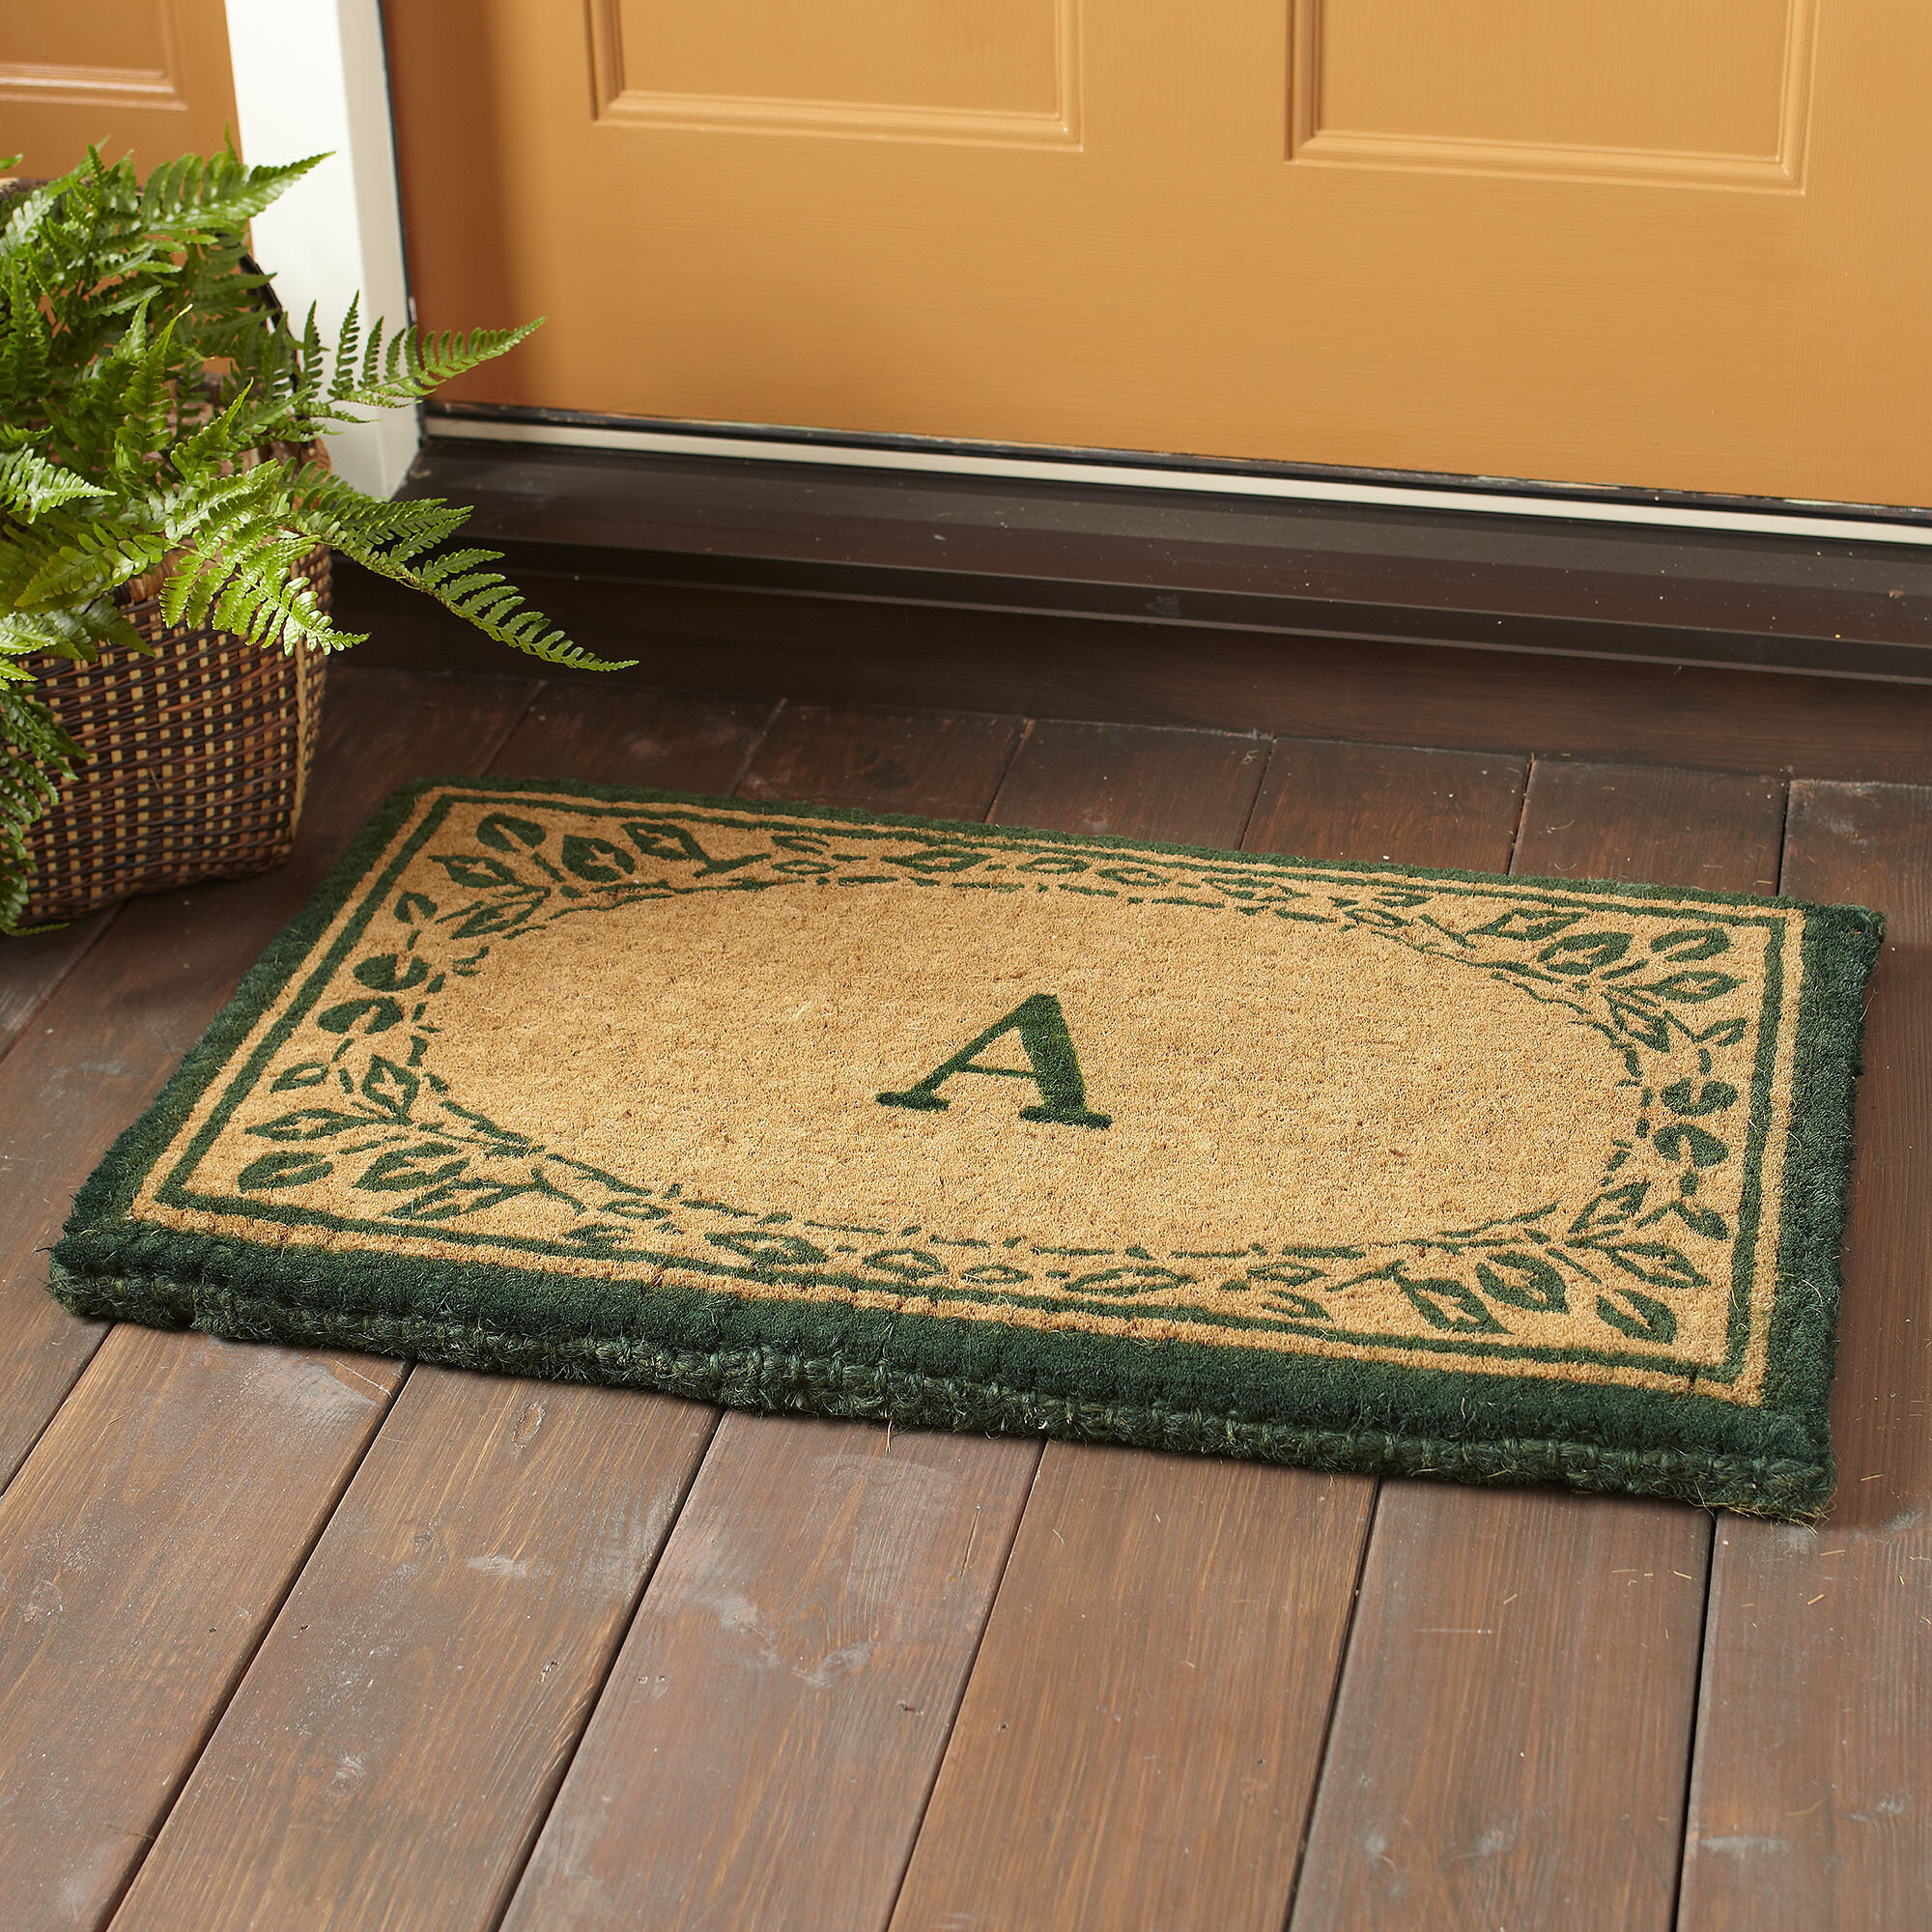 personalised welcome the h x front luxury doormat doormatpersonalized a mat mats custom door personalized customized for post w